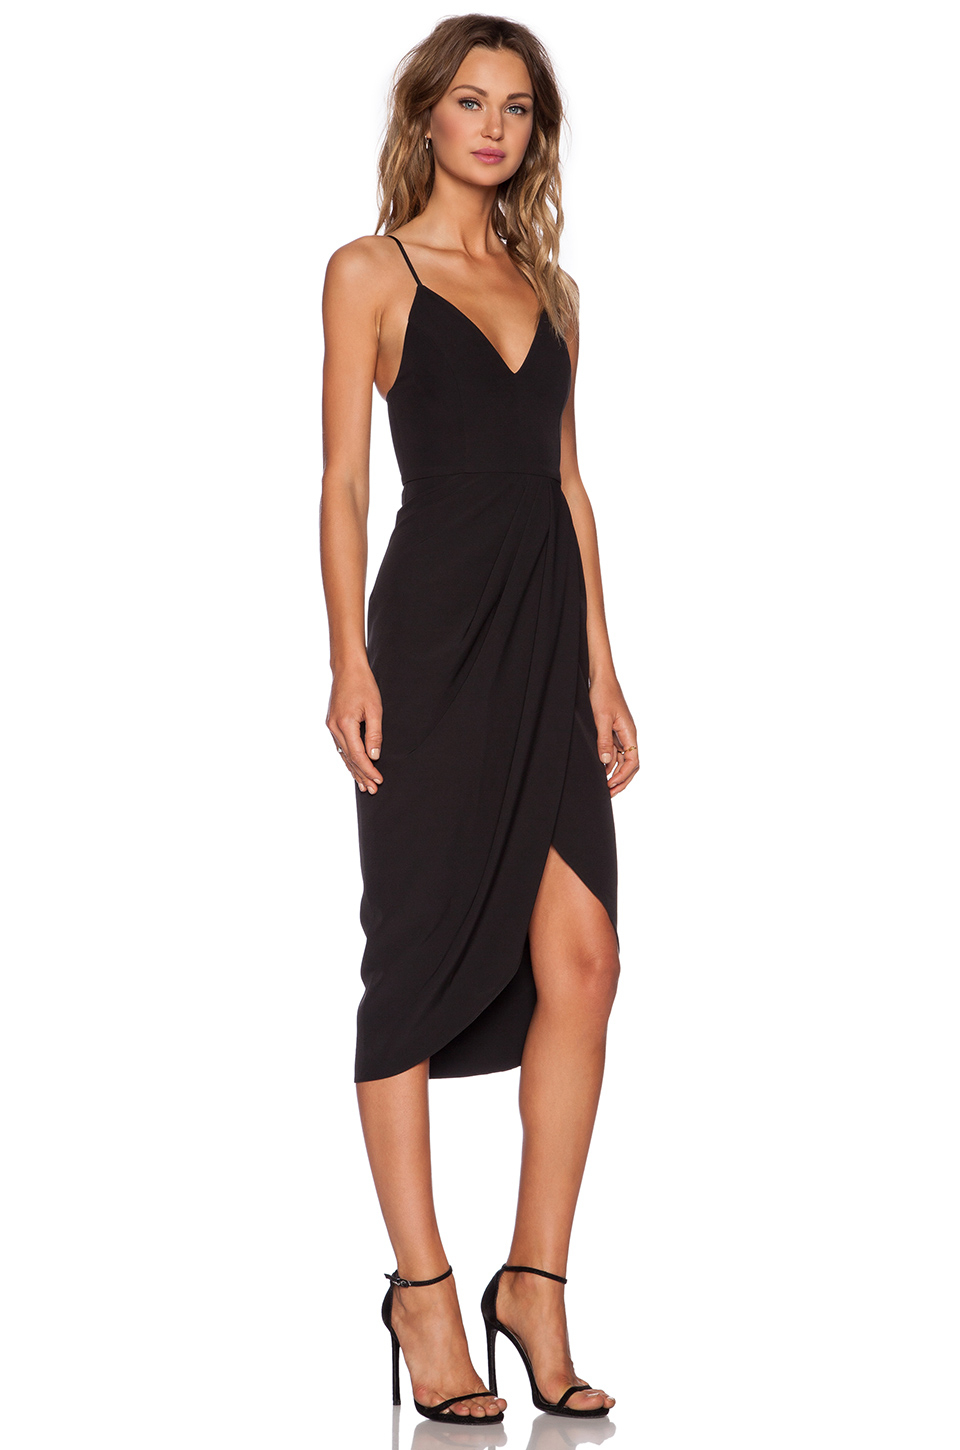 womenshona codes dress drapes backless black shona voltaire joy draped drawstring coupon women dresscoupon midi mini tribus p shon